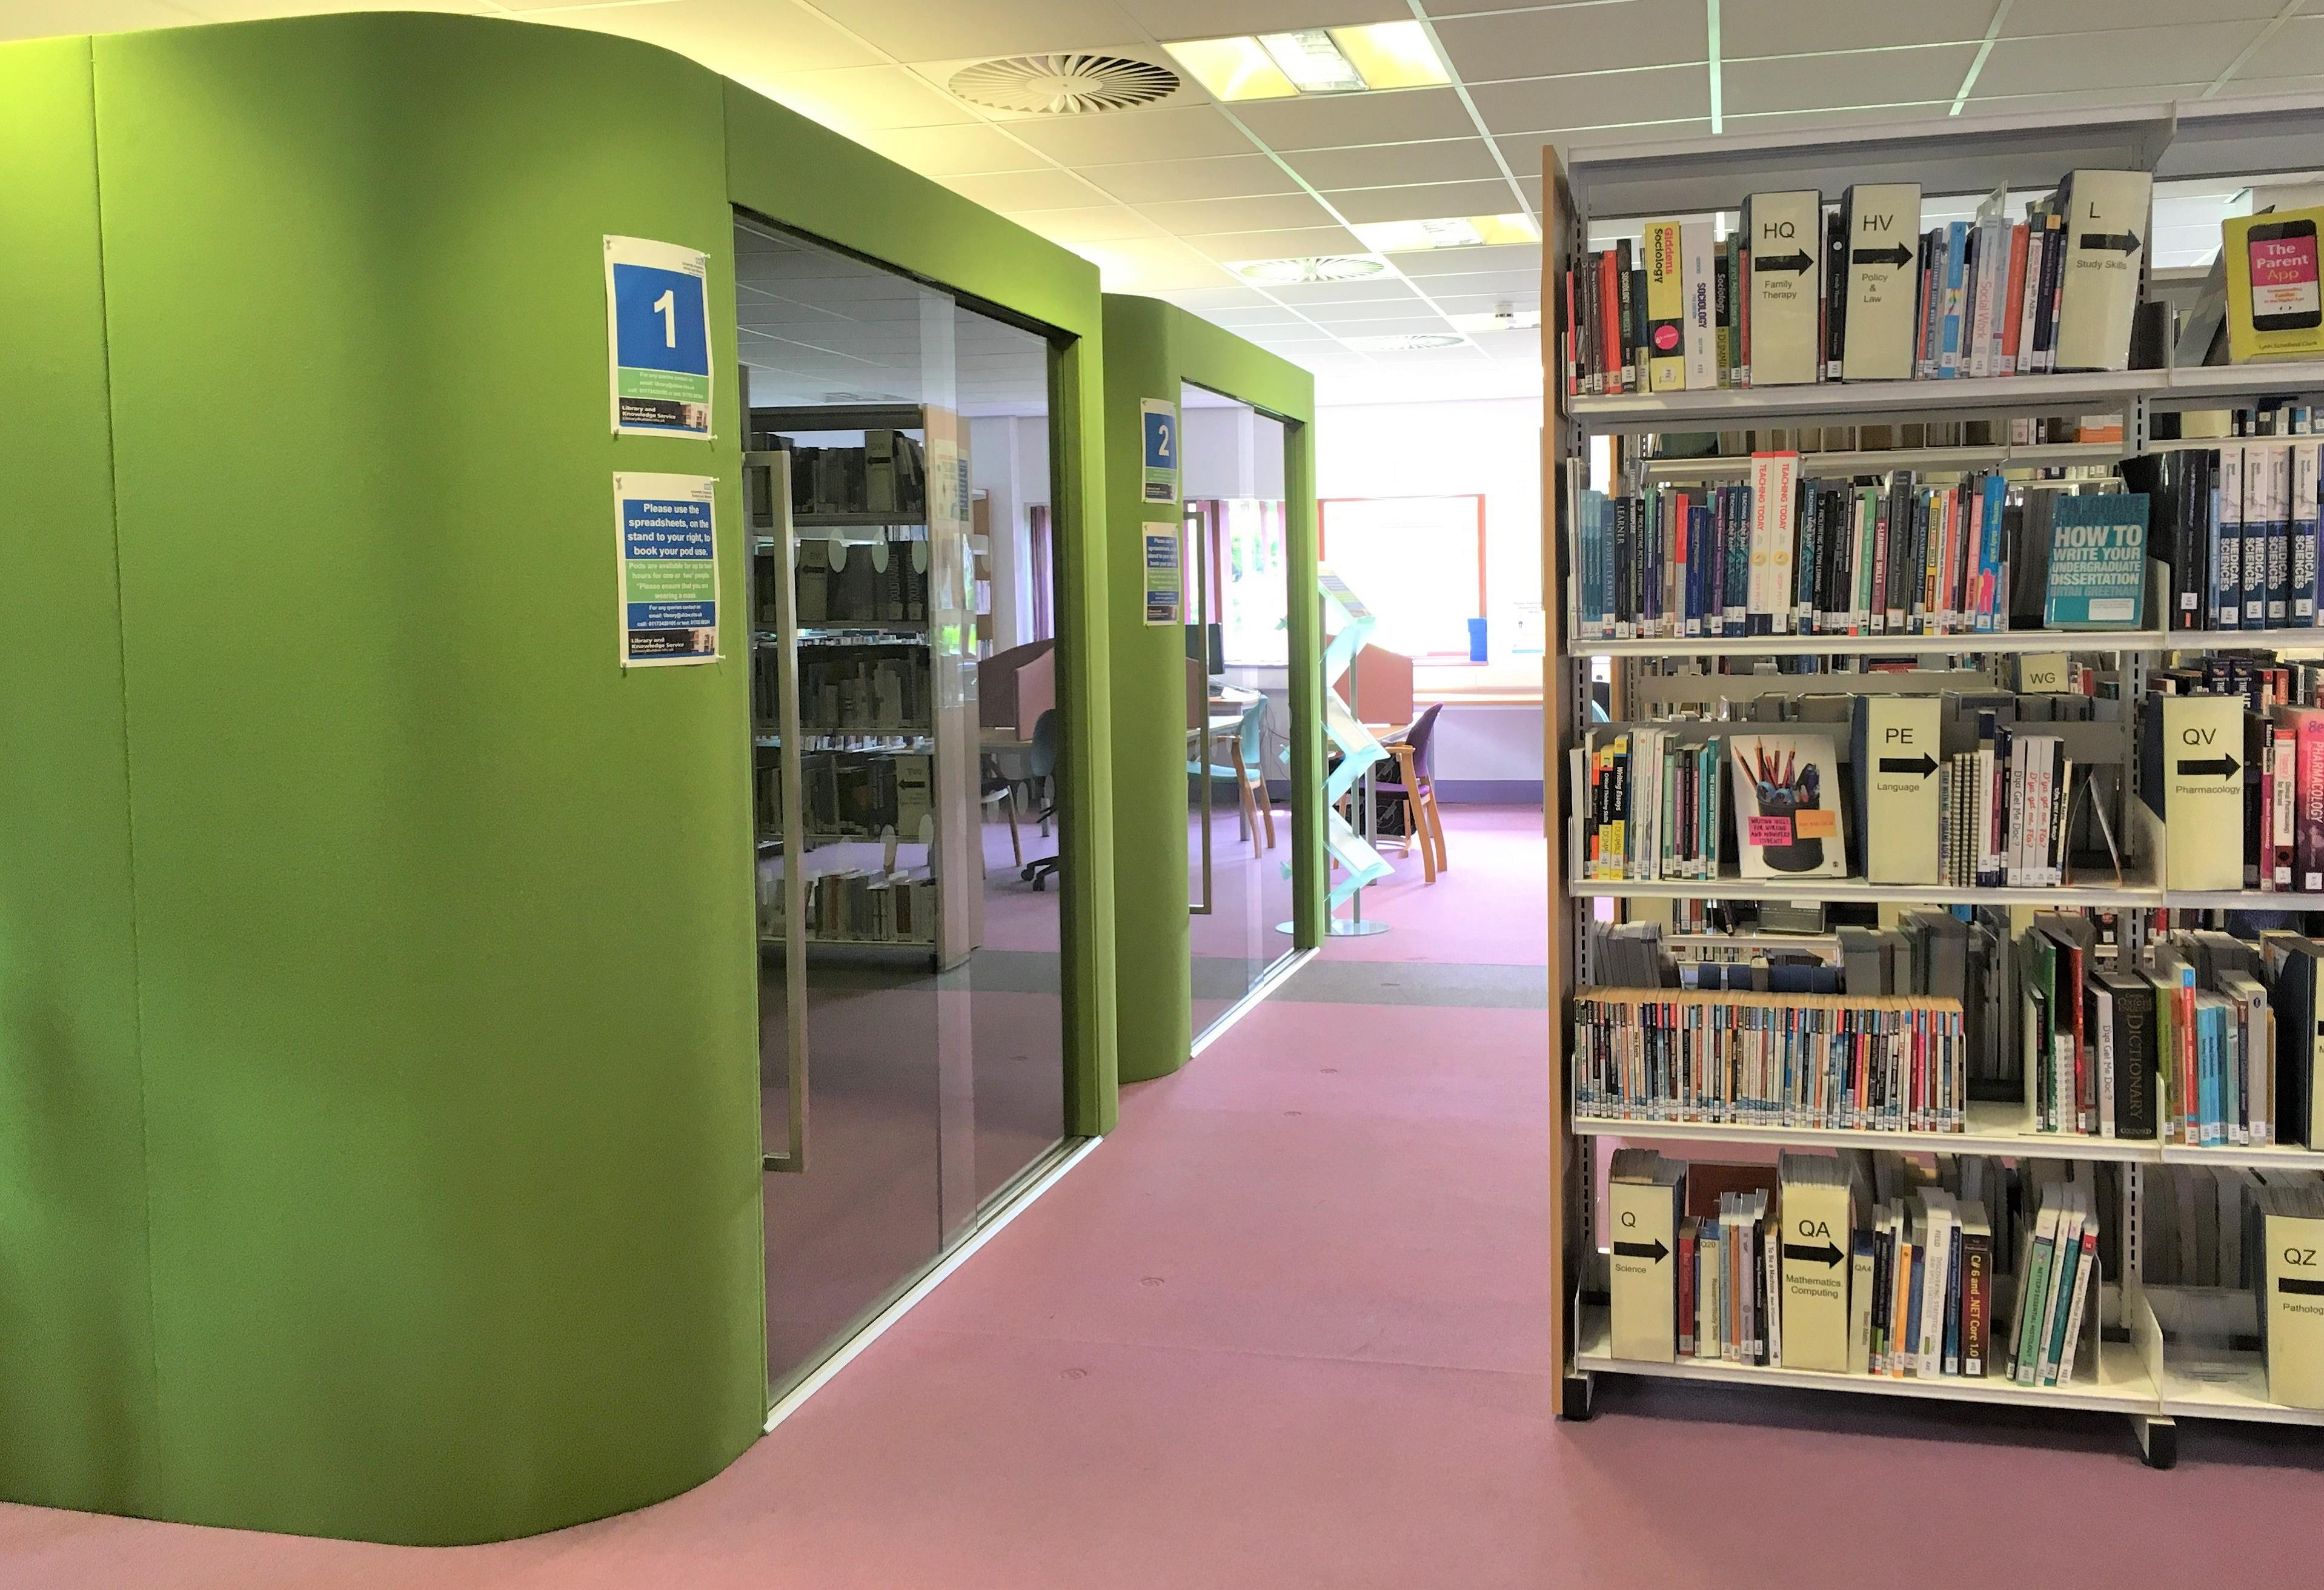 An image of the new study pods at Weston Hospital library.